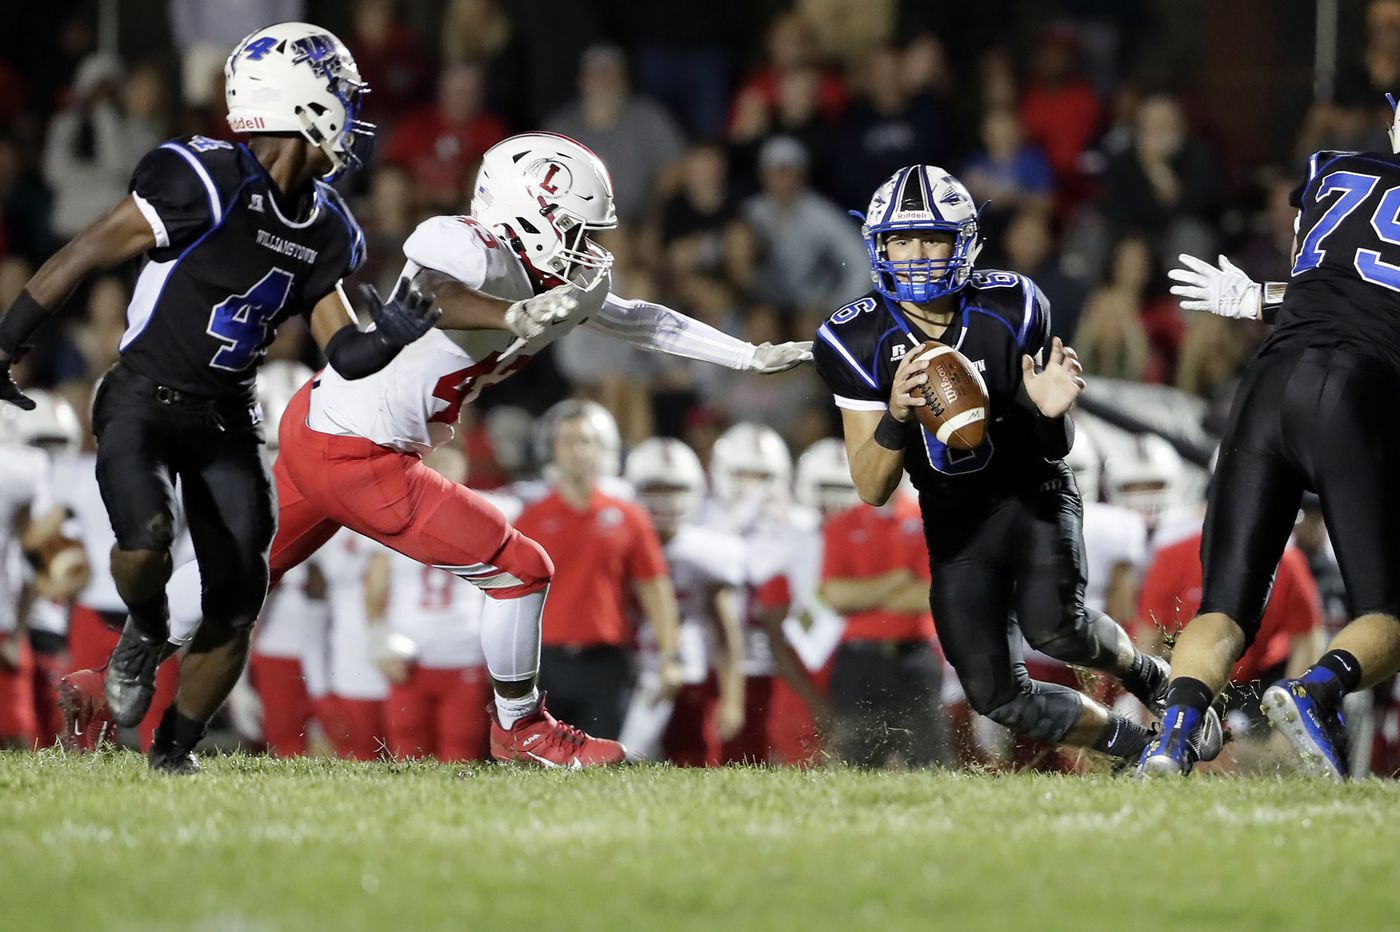 Williamstown vs. Cherokee: Braves quarterback Doug Brown is out to avenge last year's defeat